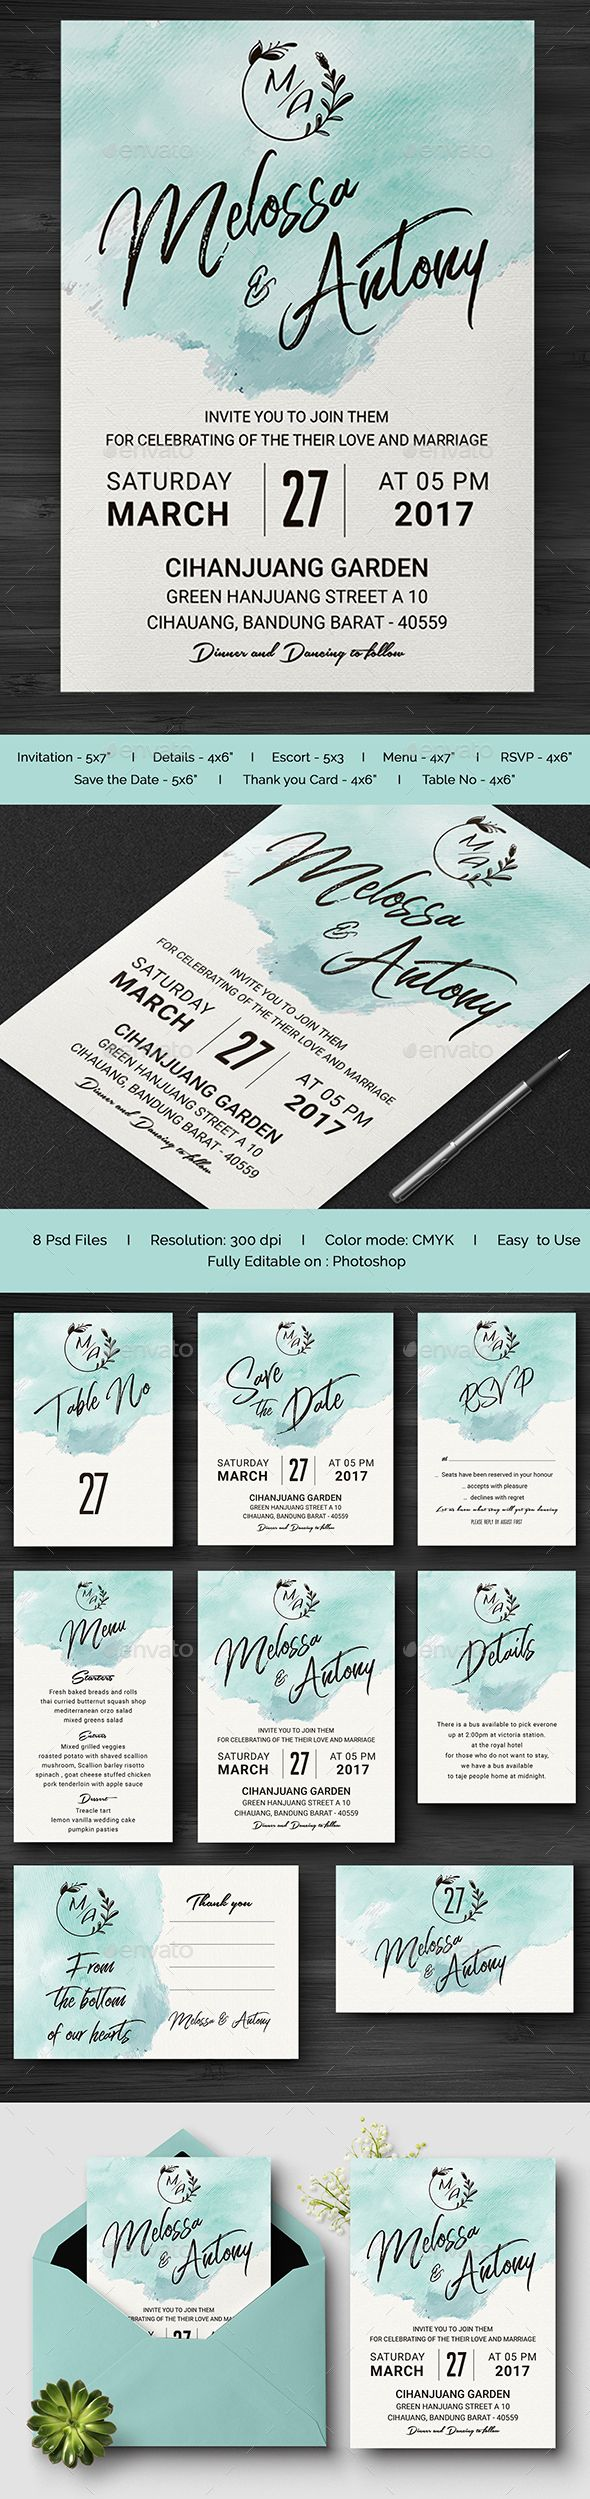 casual evening wedding invitation wording%0A Best     Wedding invitation templates ideas on Pinterest   Diy wedding  stationery  Wedding invitation wording templates and Wedding invitation  wording